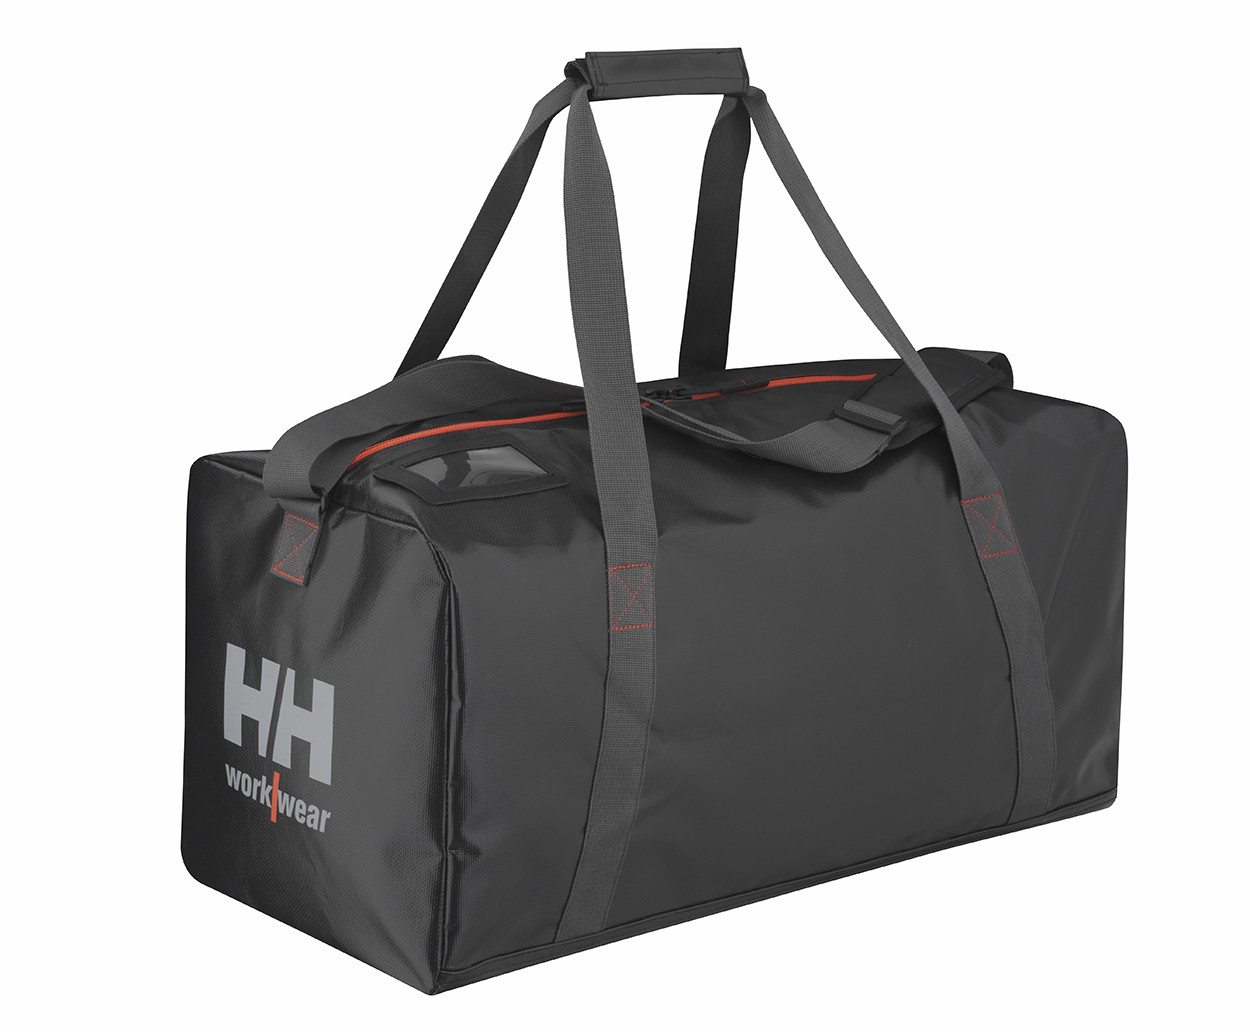 ee97d3f4018 Helly Hansen Ww Offshore Bag - Travel Bags and Holdalls - Bags ...